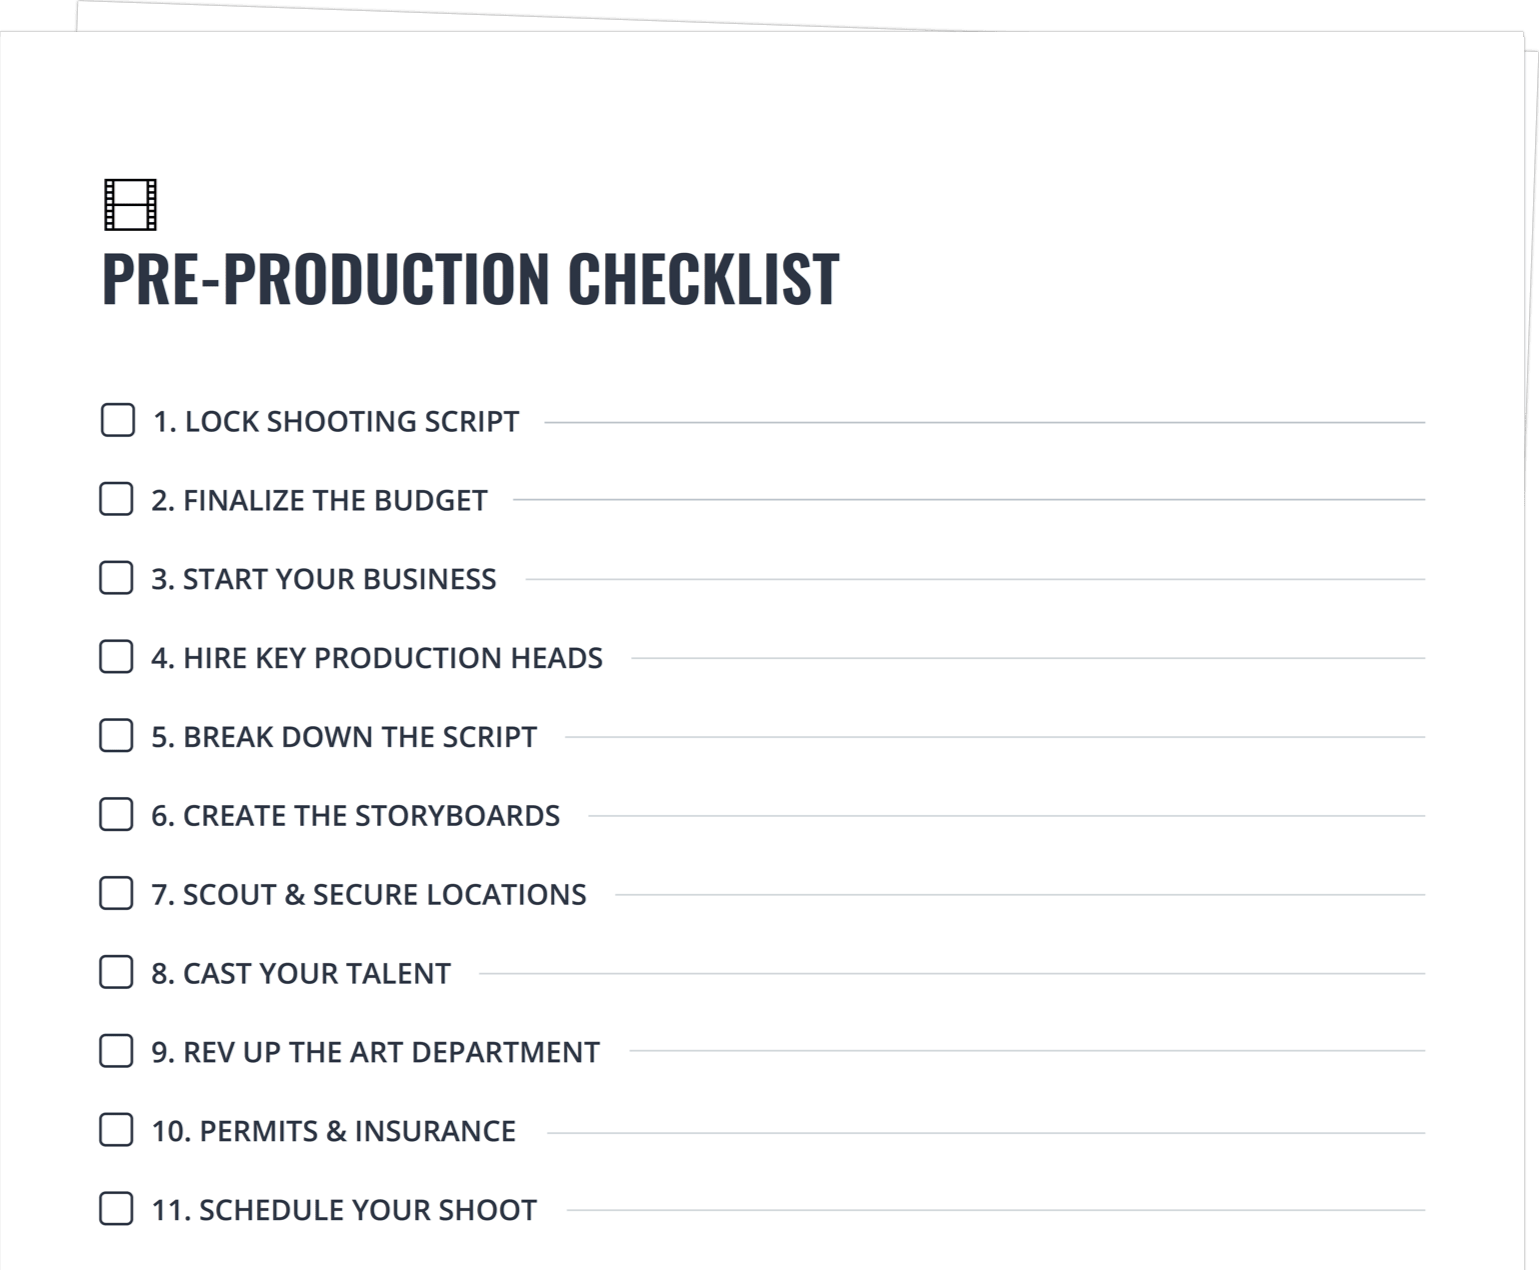 How To Produce A Movie The Pre Production Process Explained